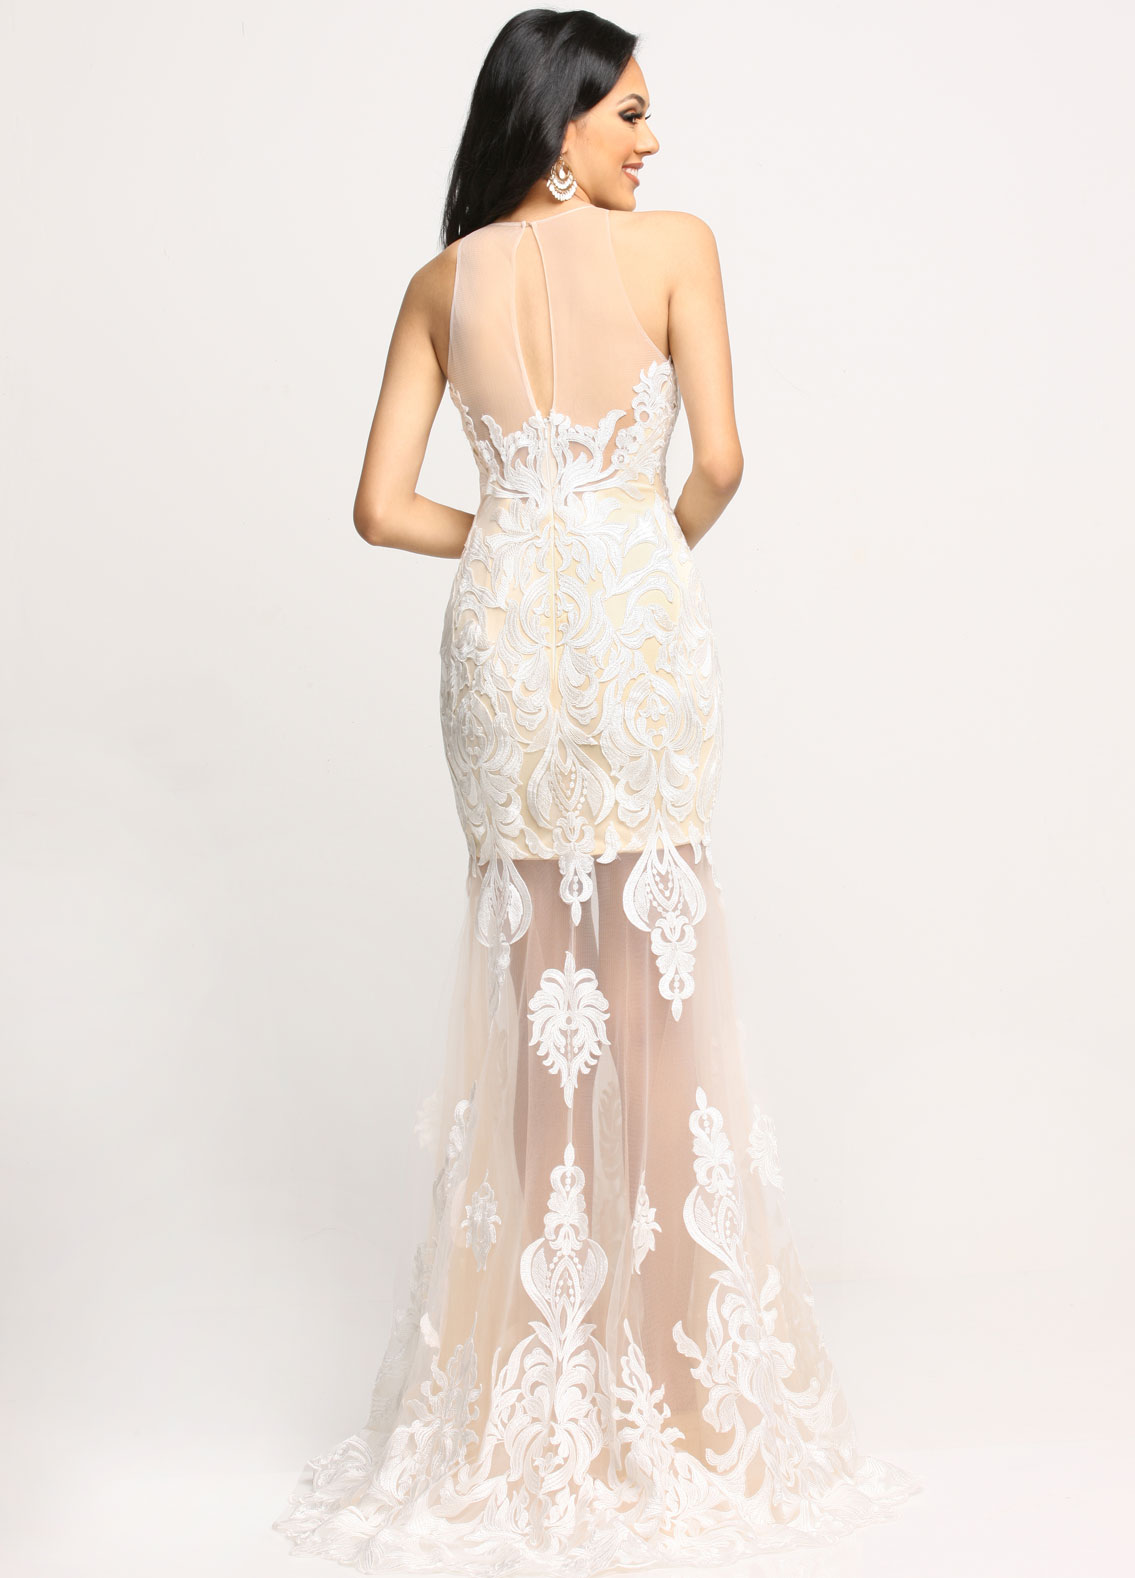 Image showing back view of style #71676